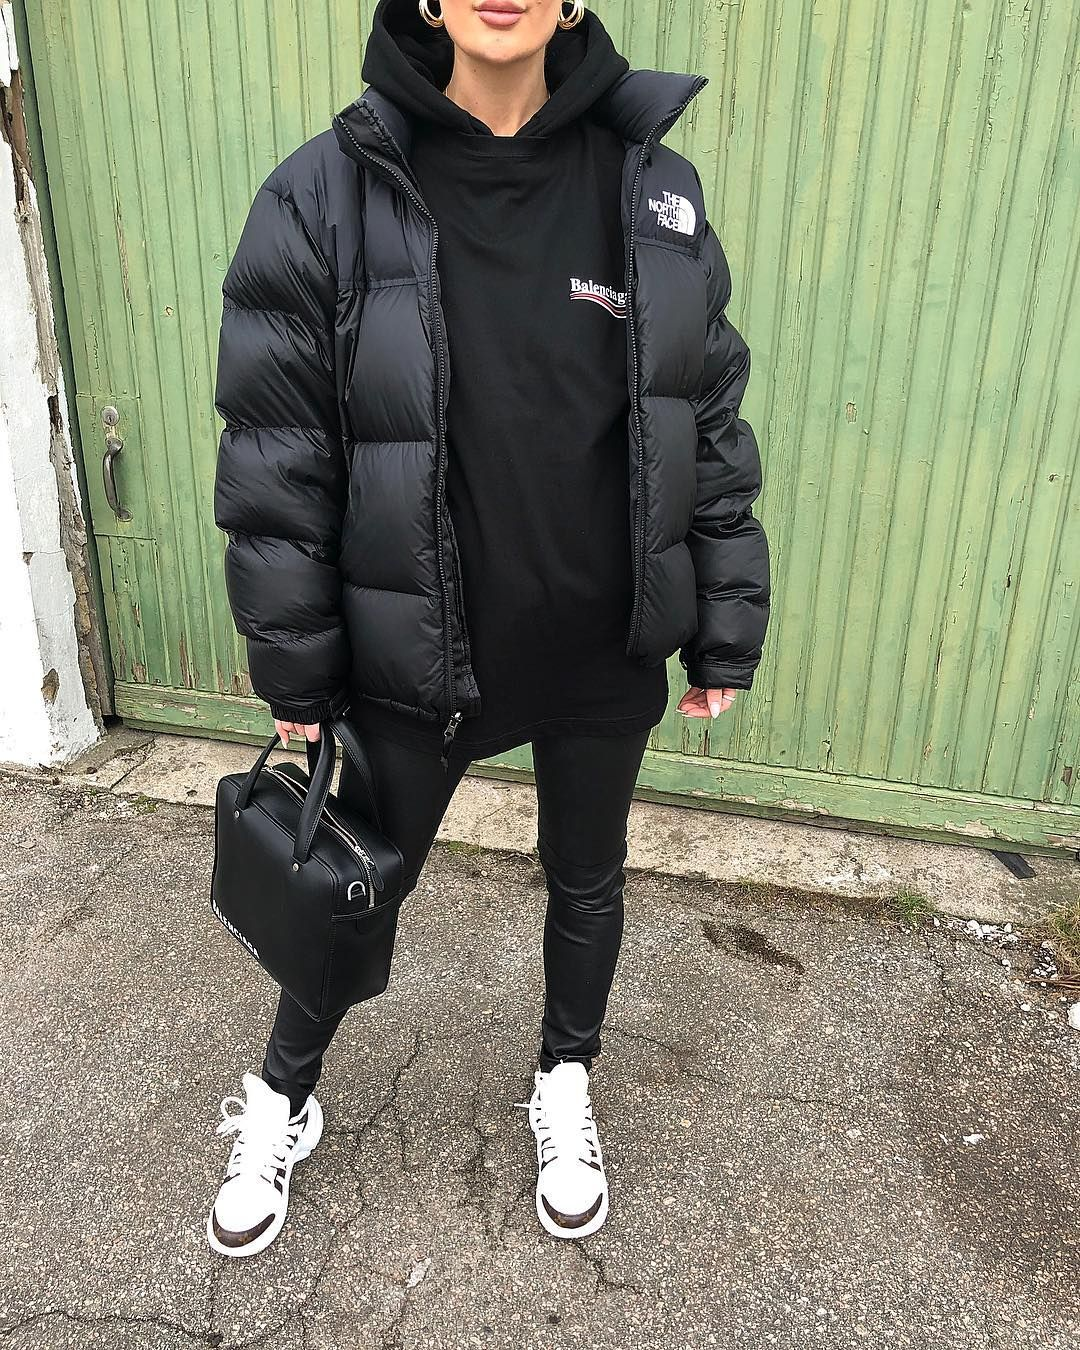 Ardiananicki On Instagram If I Had To Choose One Color Outfit Black Threadsstyling T North Face Jacket Outfit Winter Fashion Outfits North Face Outfits [ 1350 x 1080 Pixel ]